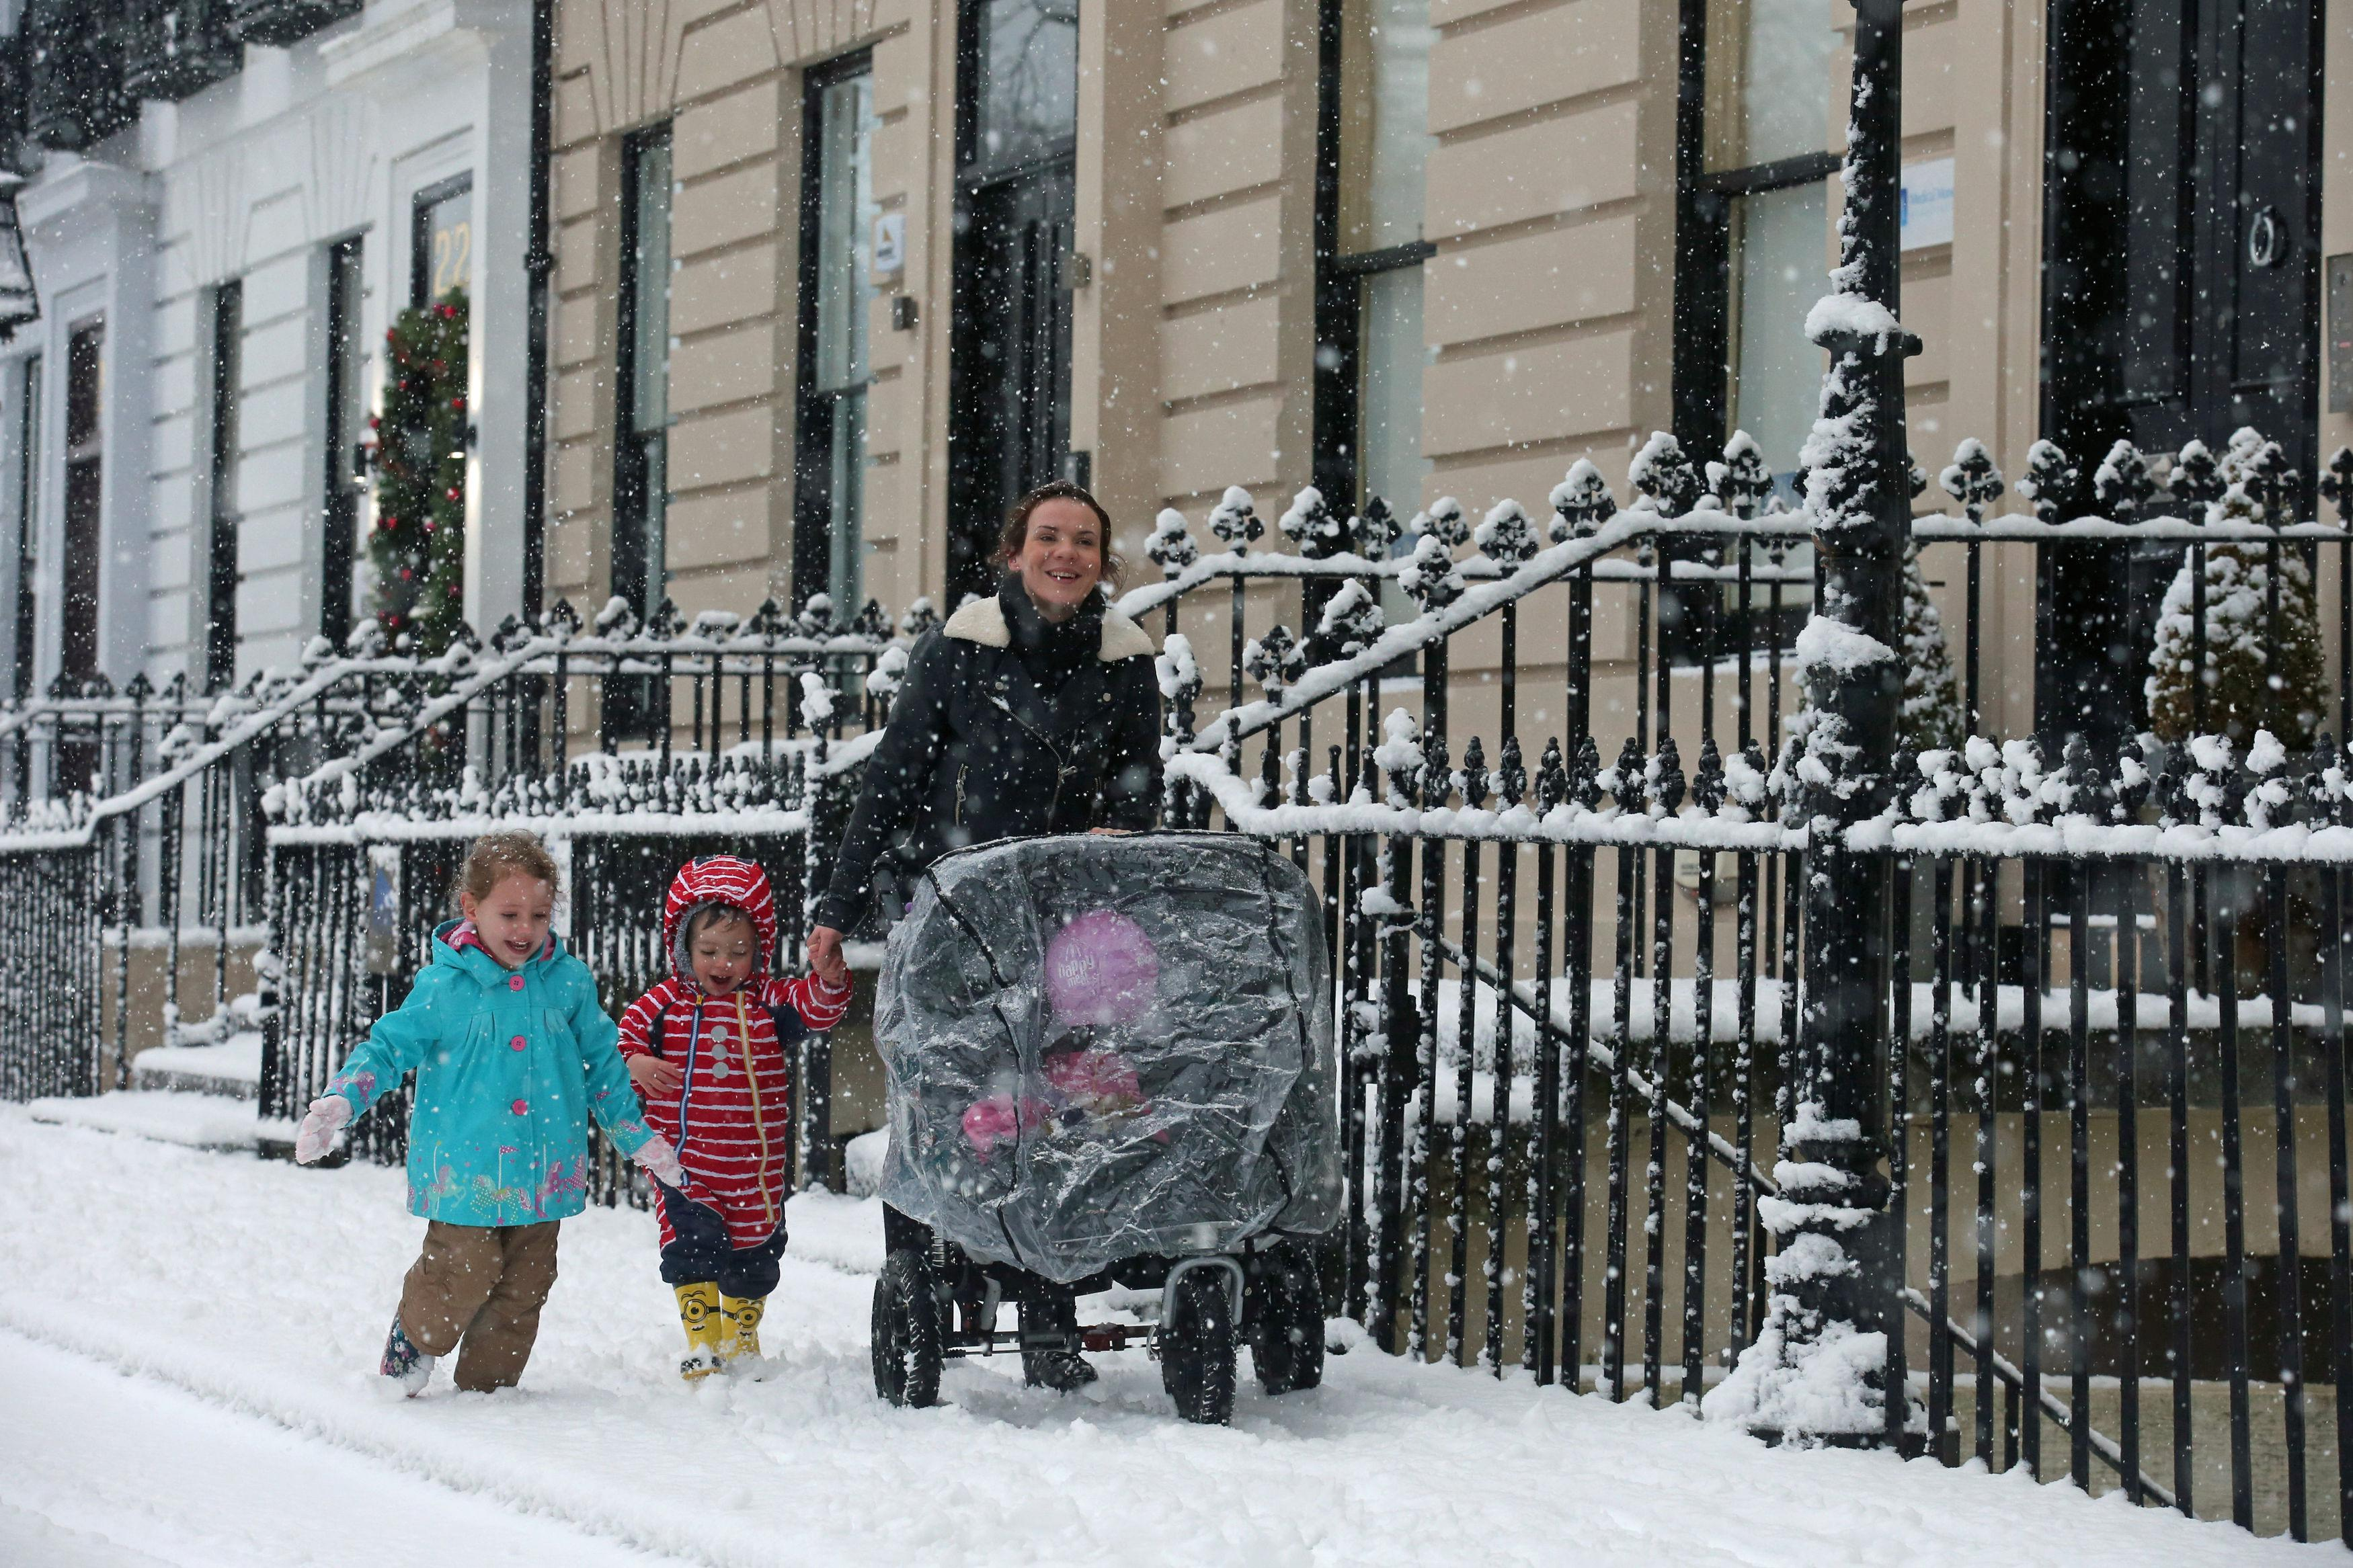 Those in receipt of benefits, especially with children under five, can be eligible for cold weather payments